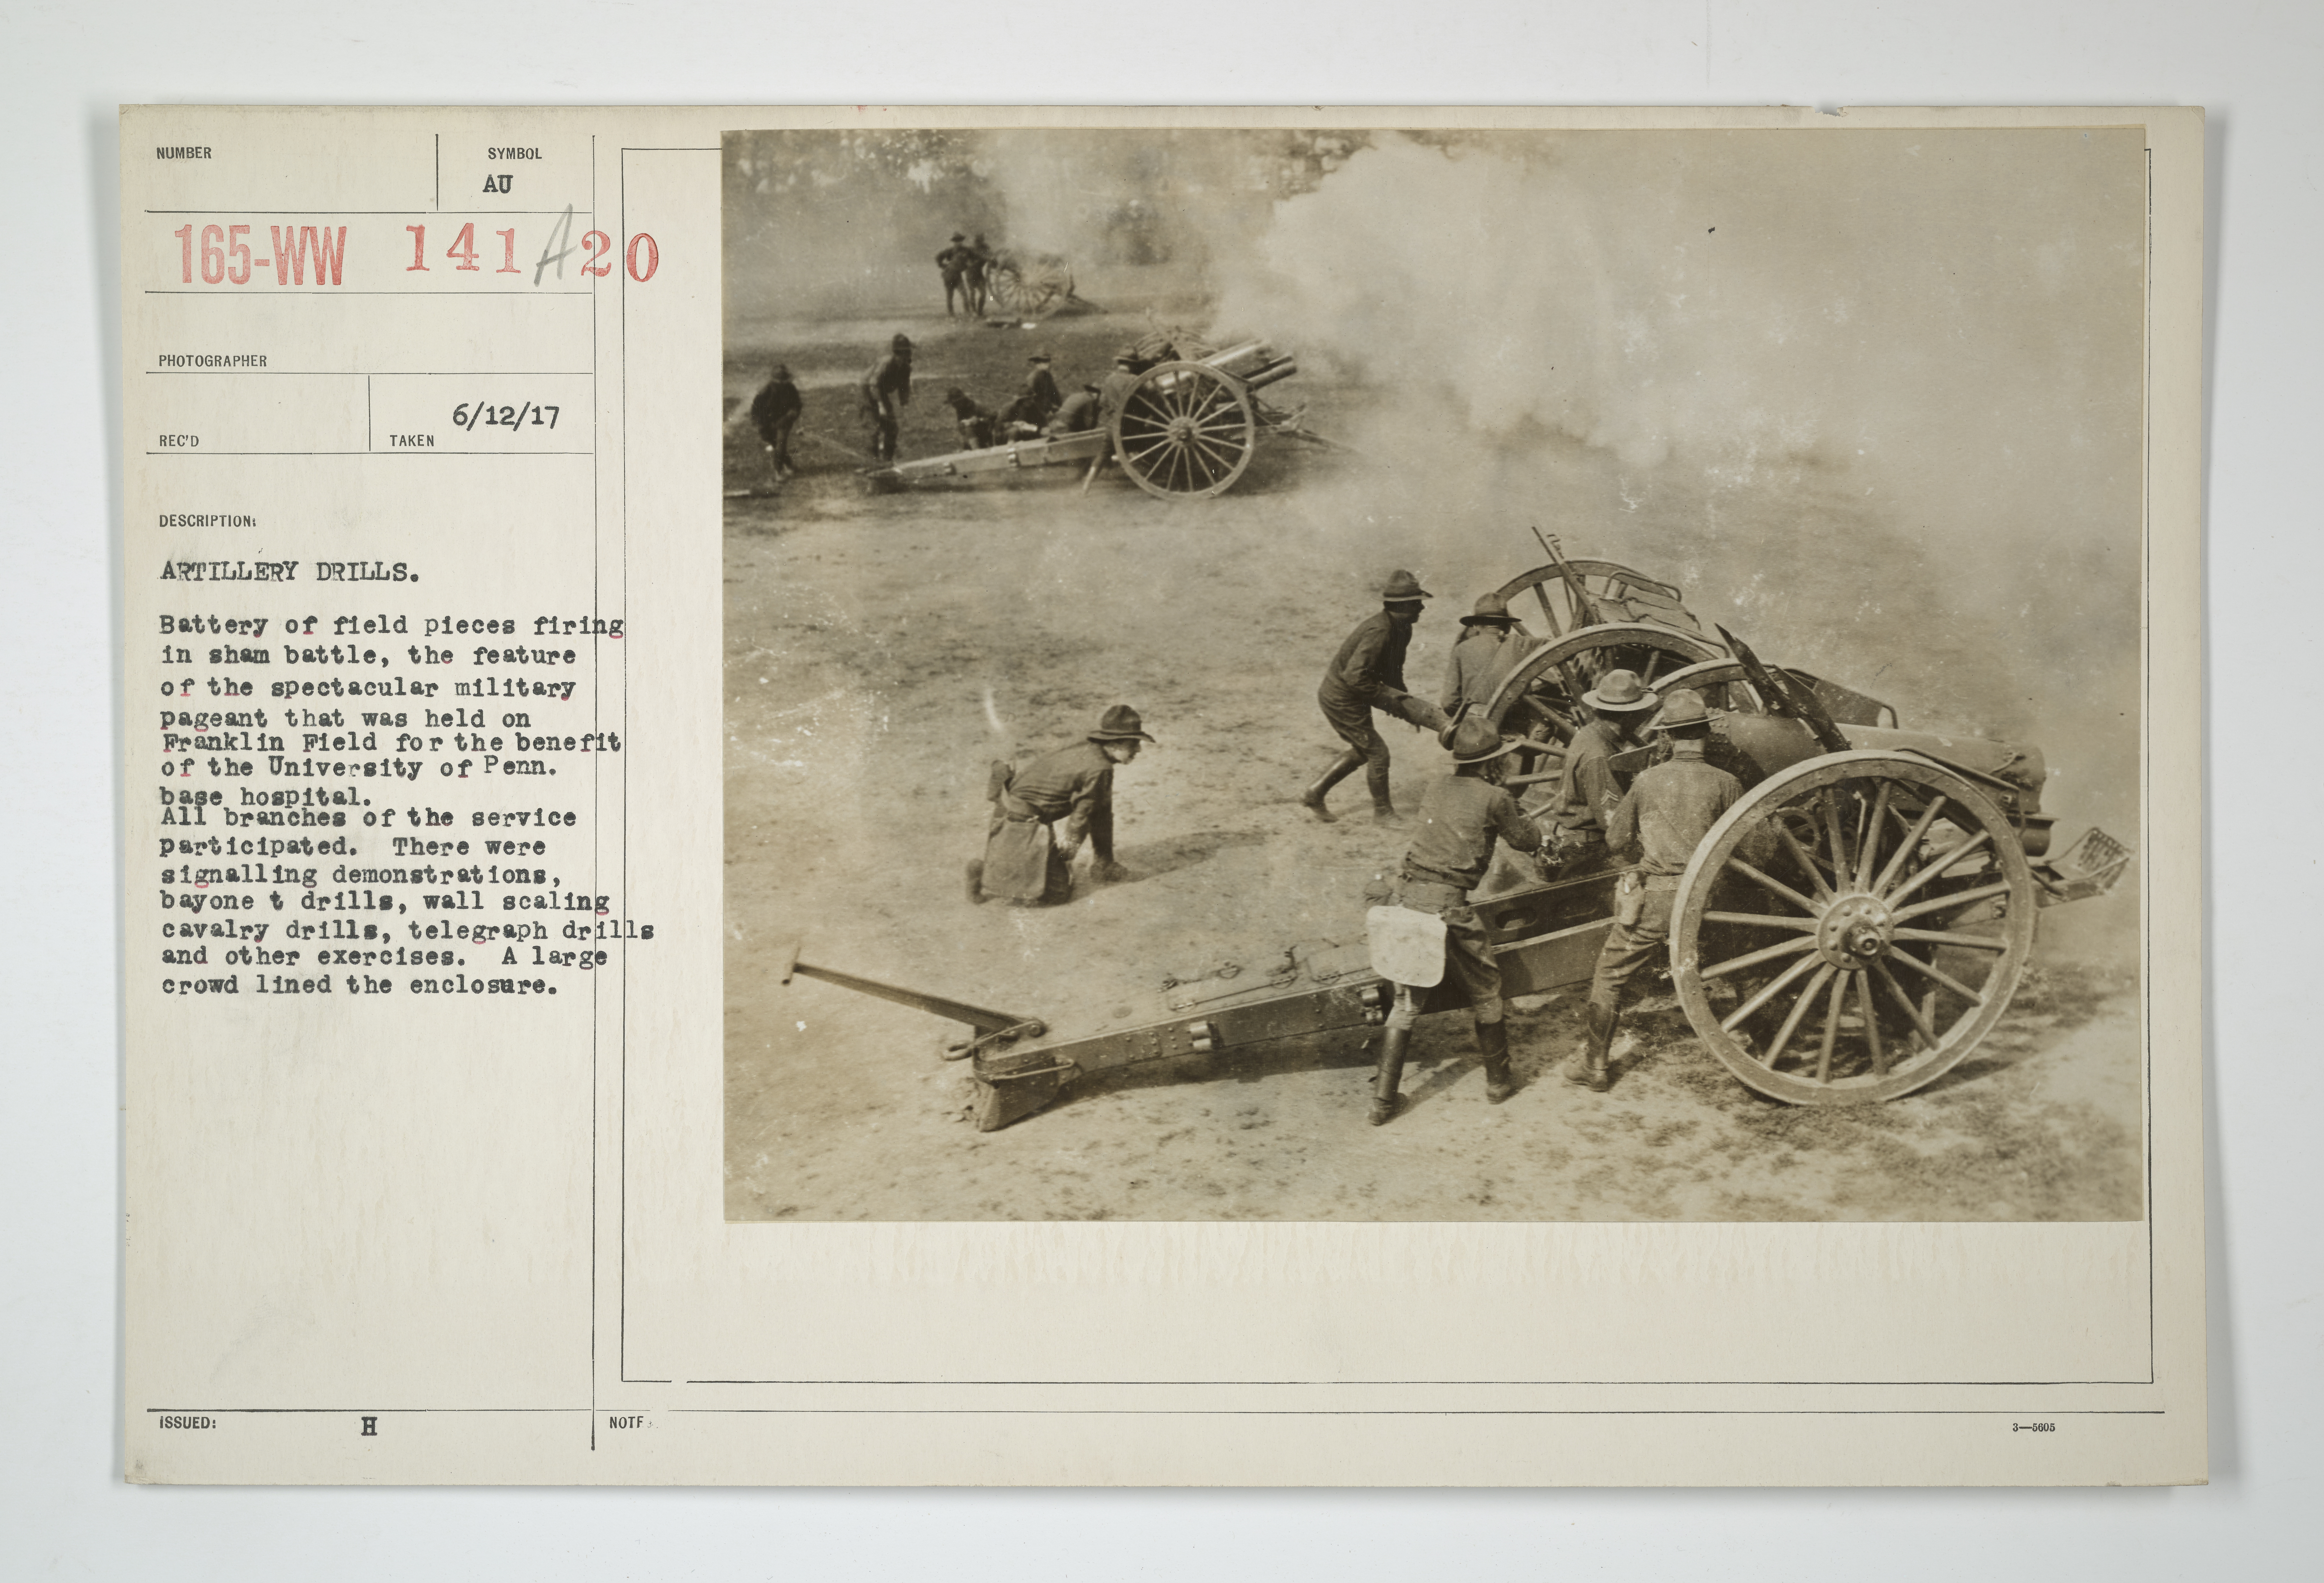 Drills - Artillery - Field - Firing - Artillery drills